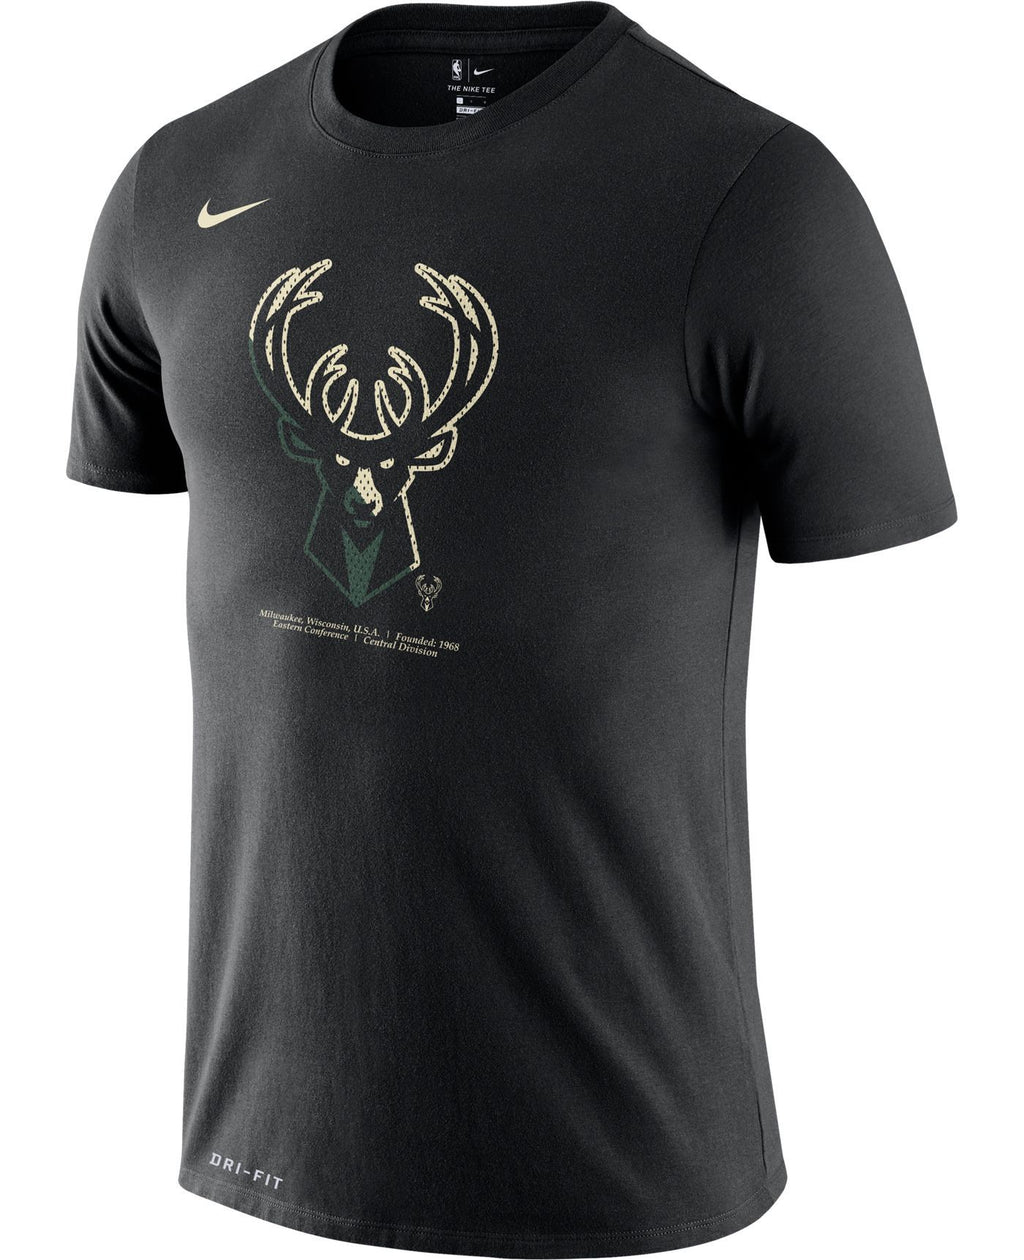 Youth Nike NBA Logo Tee (Bucks)